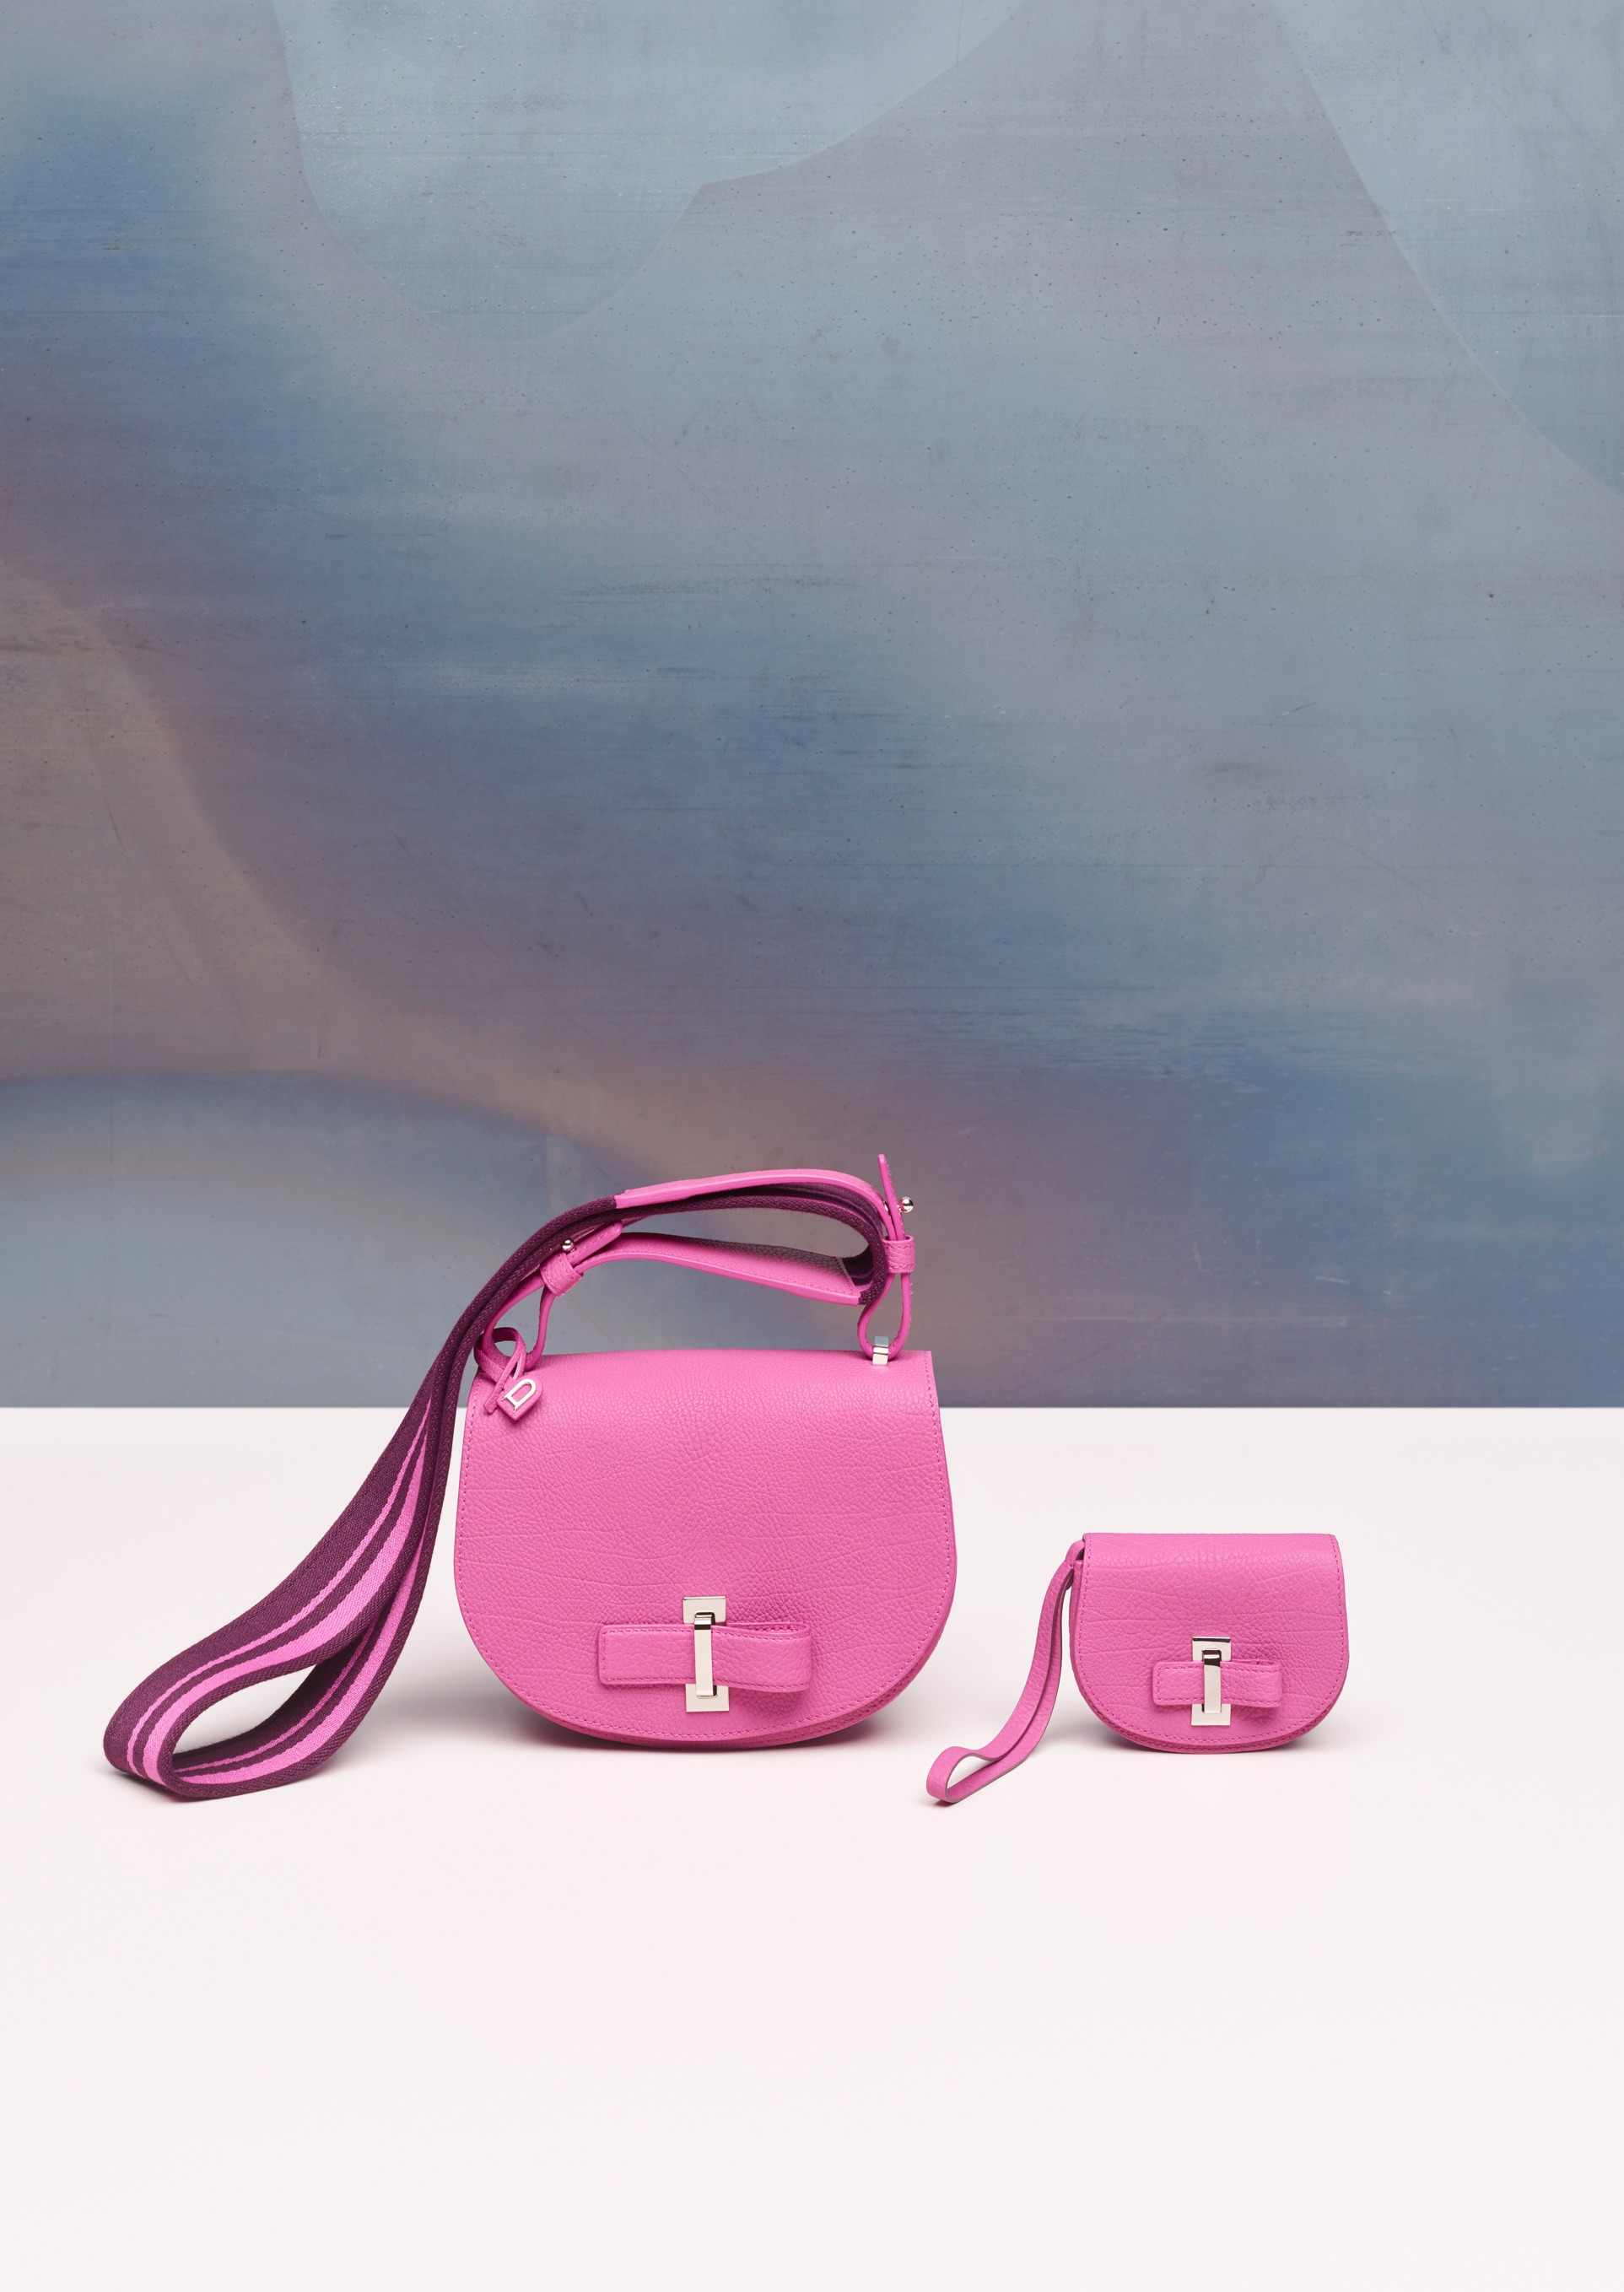 Delvaux Fall Winter 2017 Bag Collection Spotted Fashion